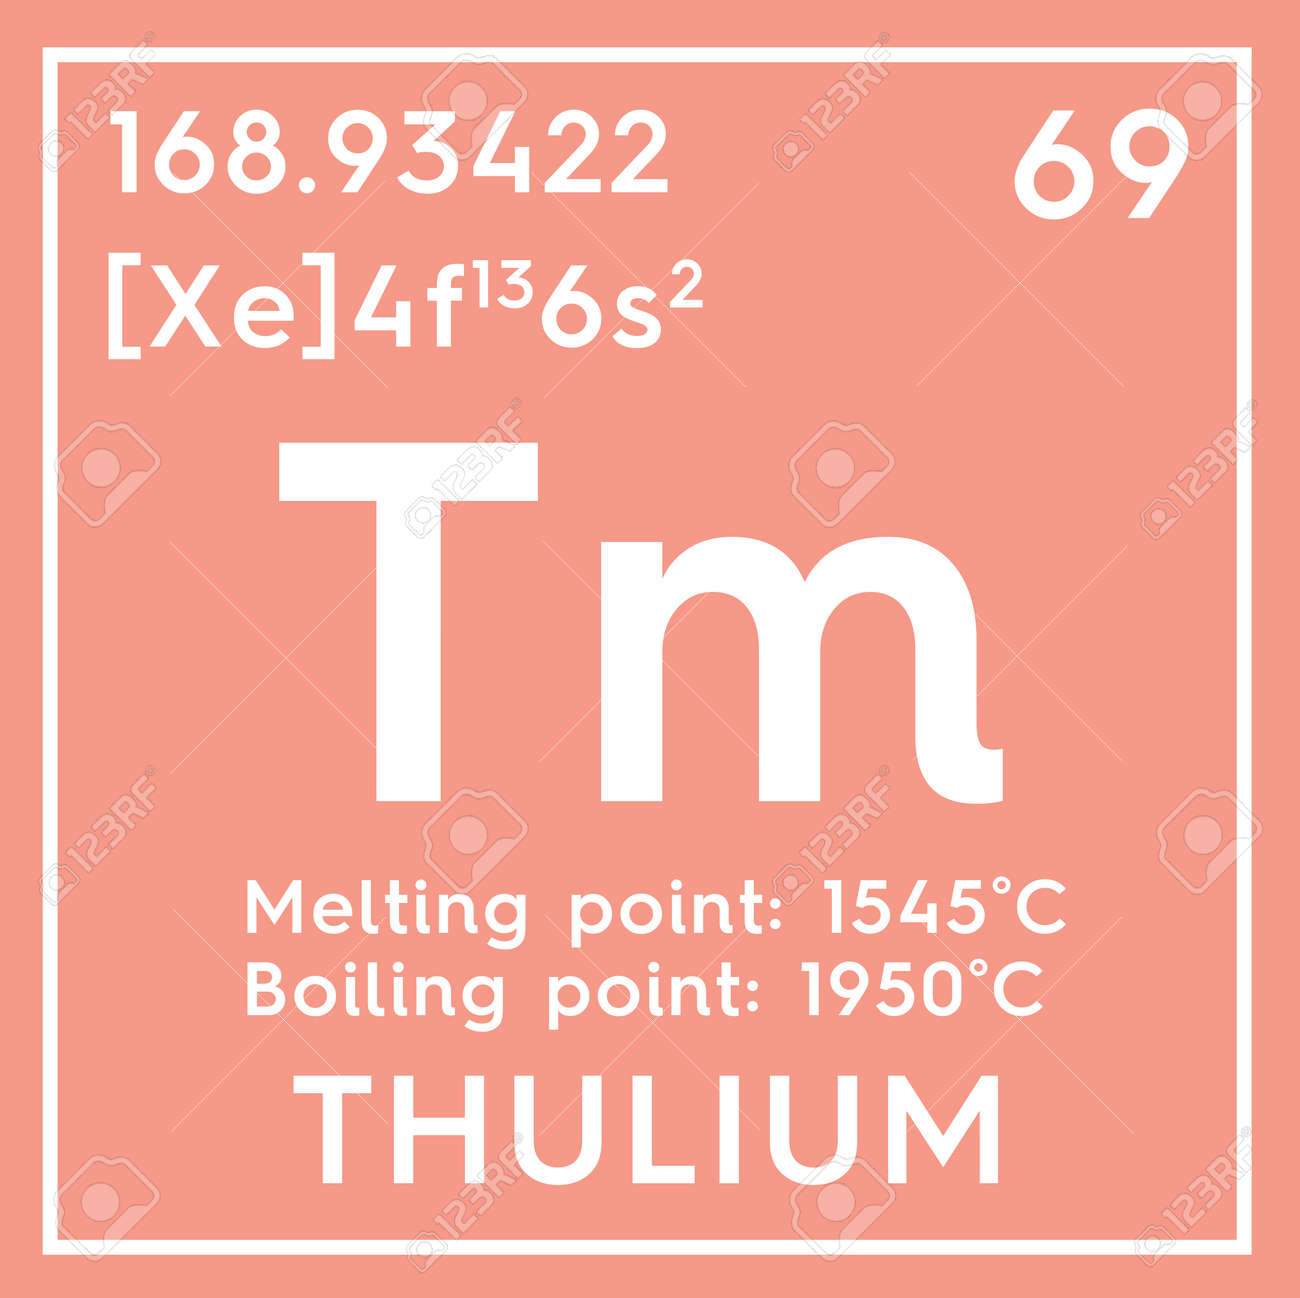 Periodic table thulium gallery periodic table images thulium lanthanoids chemical element of mendeleevs periodic thulium lanthanoids chemical element of mendeleevs periodic table thulium gamestrikefo Gallery